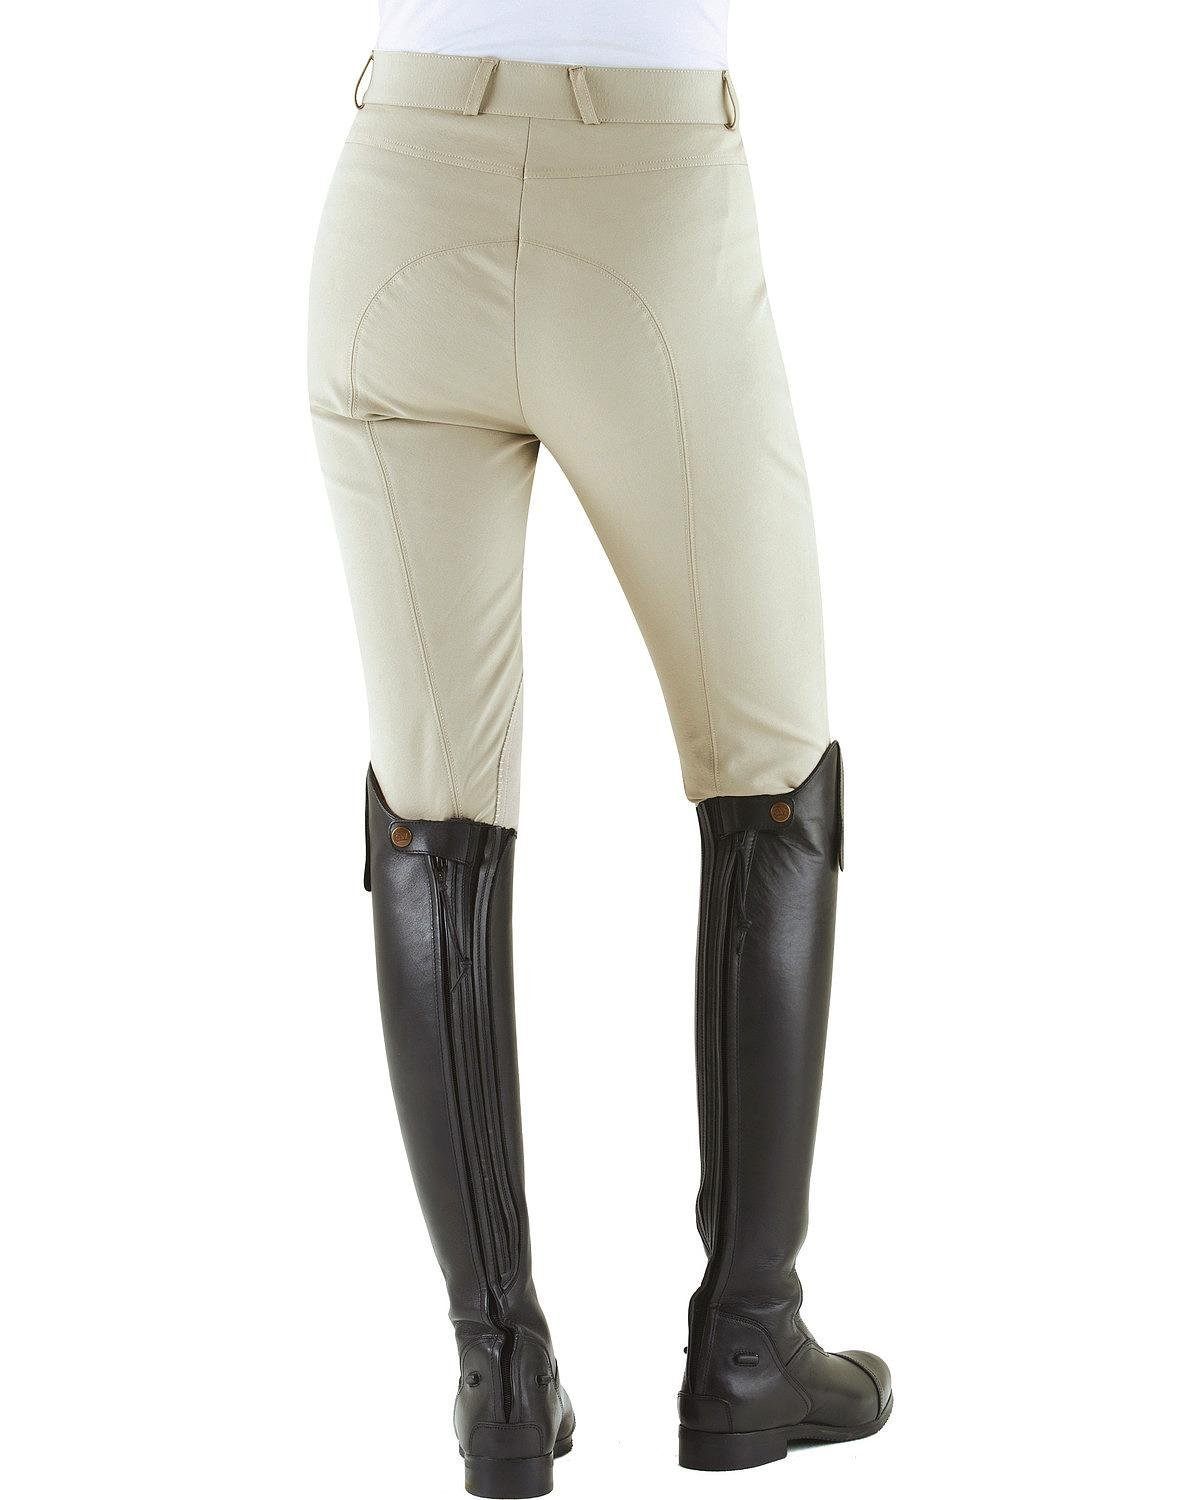 Ovation Women's Milano Knee Patch Breeches - 469486Stone B00NZCSVRO 26 L|Stone